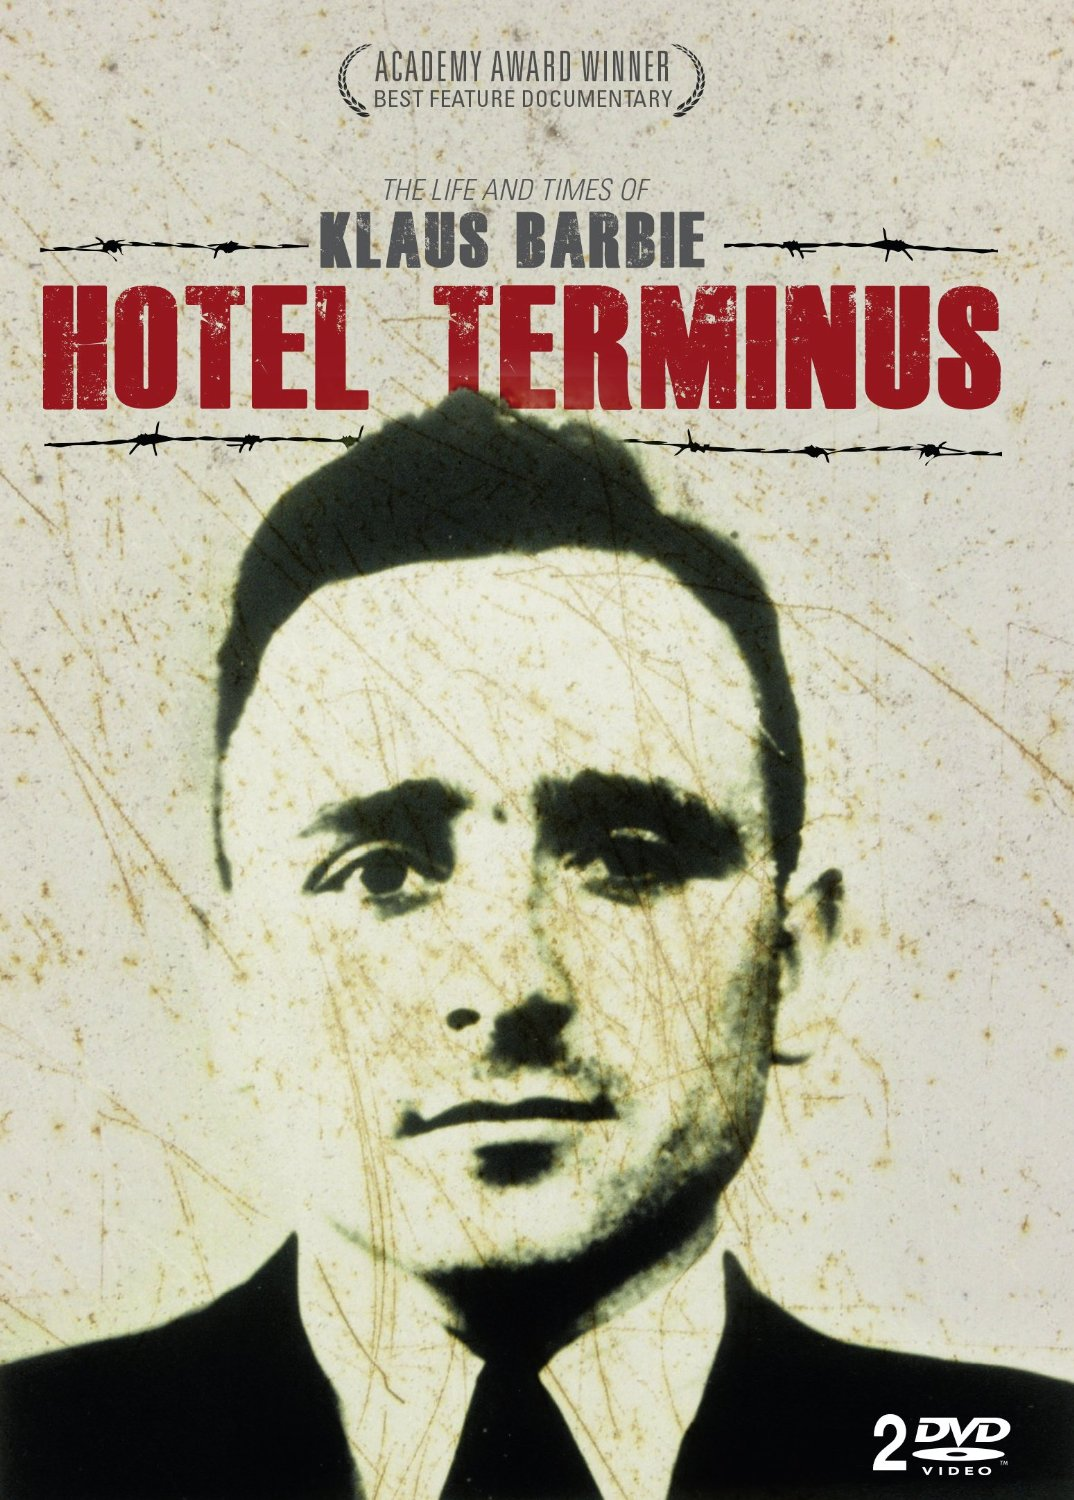 Buy Hotel Terminus: The Life and Times of Klaus Barbie